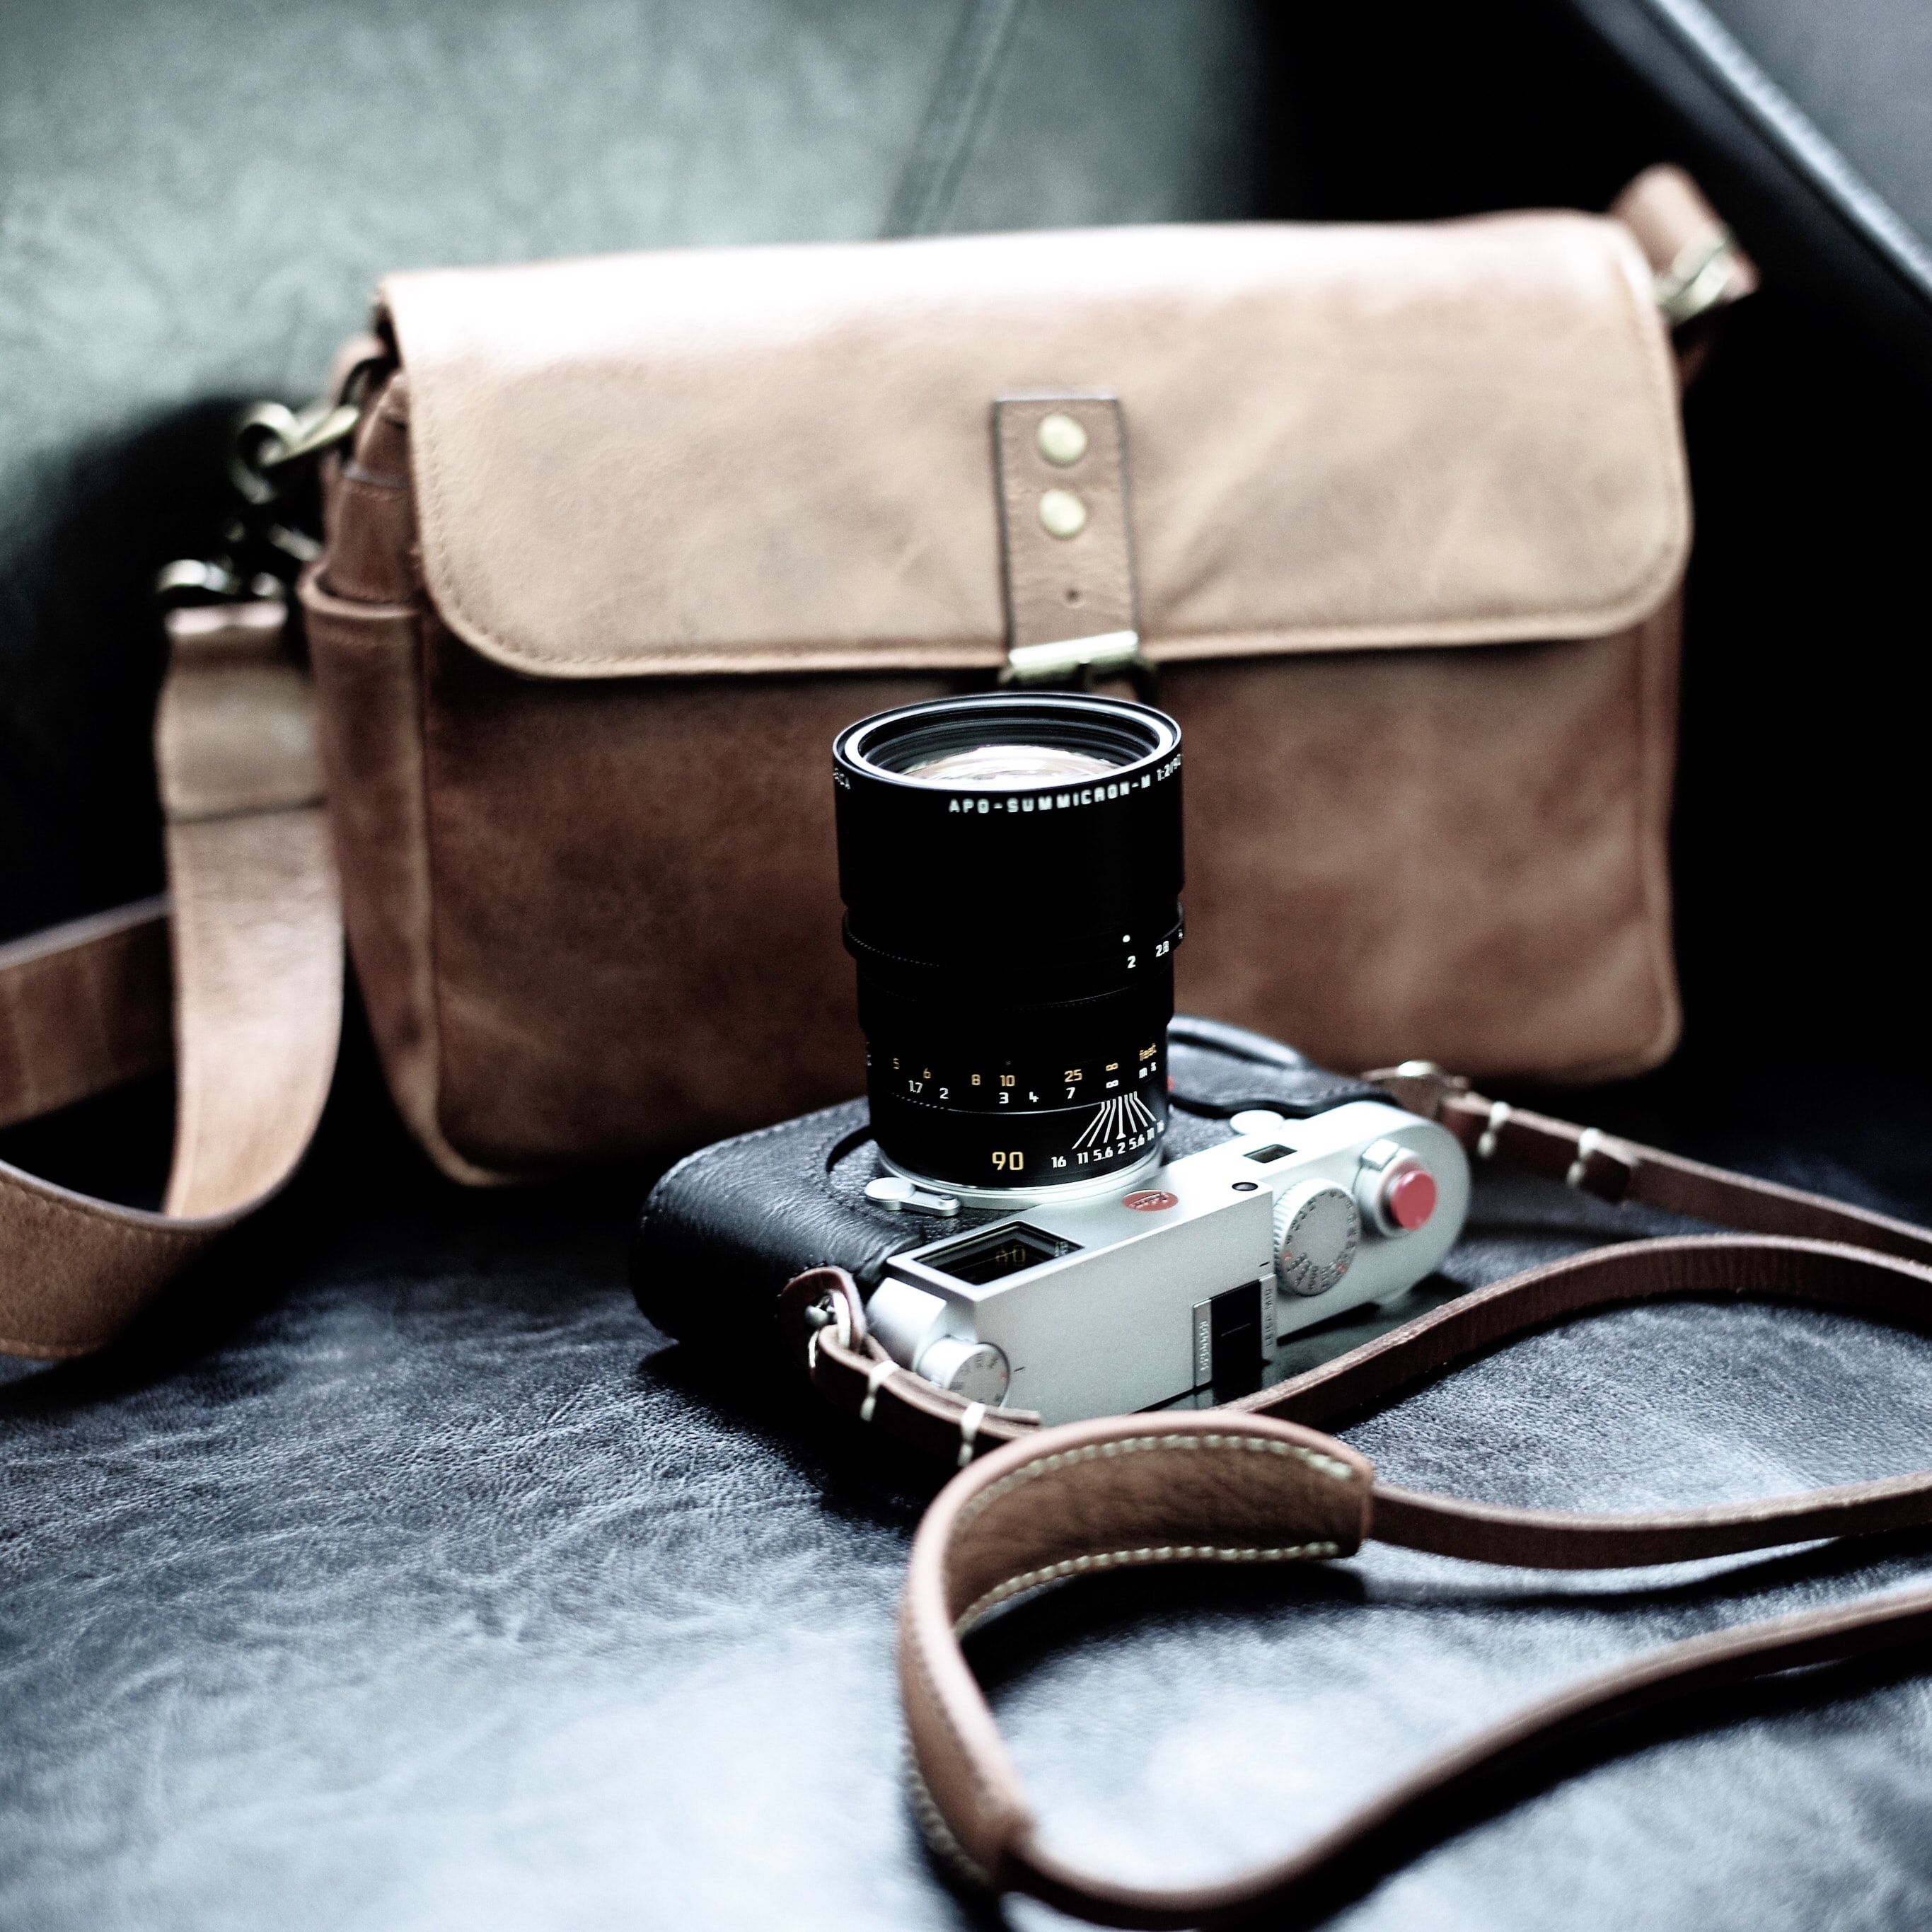 gray and black DSLR camera beside brown leather sling bag